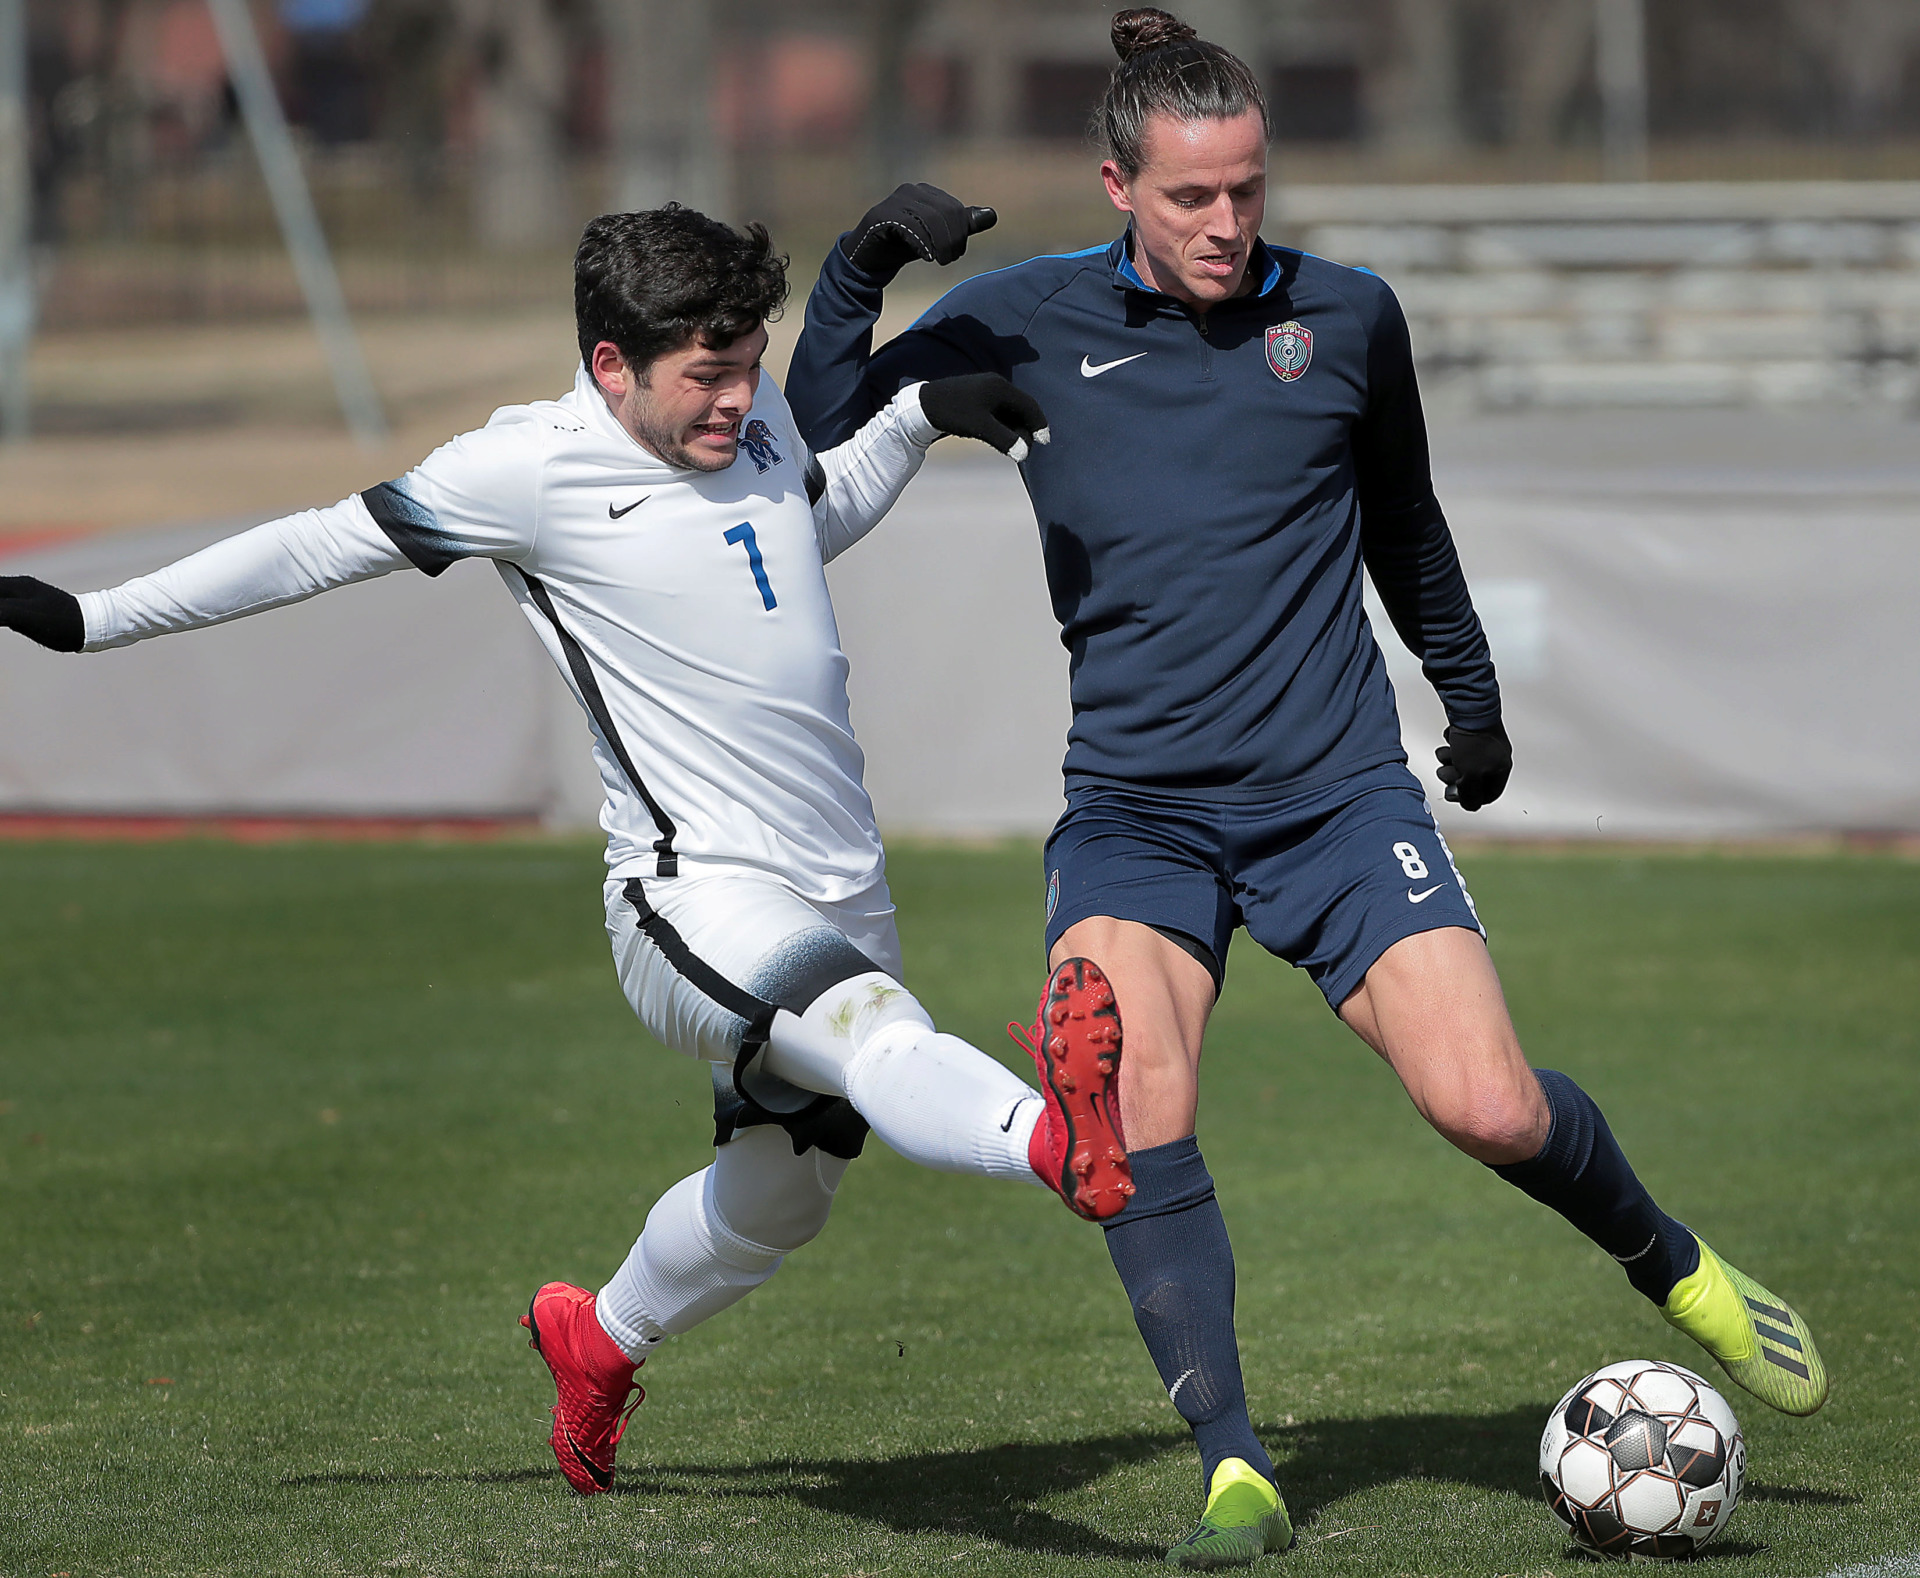 <strong>Memphis 901 FC defender Marc Burch passes under pressure by University of Memphis midfielder Edgar Alaniz during an exhibition game against the Tigers soccer team at the U of M south campus on Feb. 9, 2019.</strong> (Jim Weber/Daily Memphian)